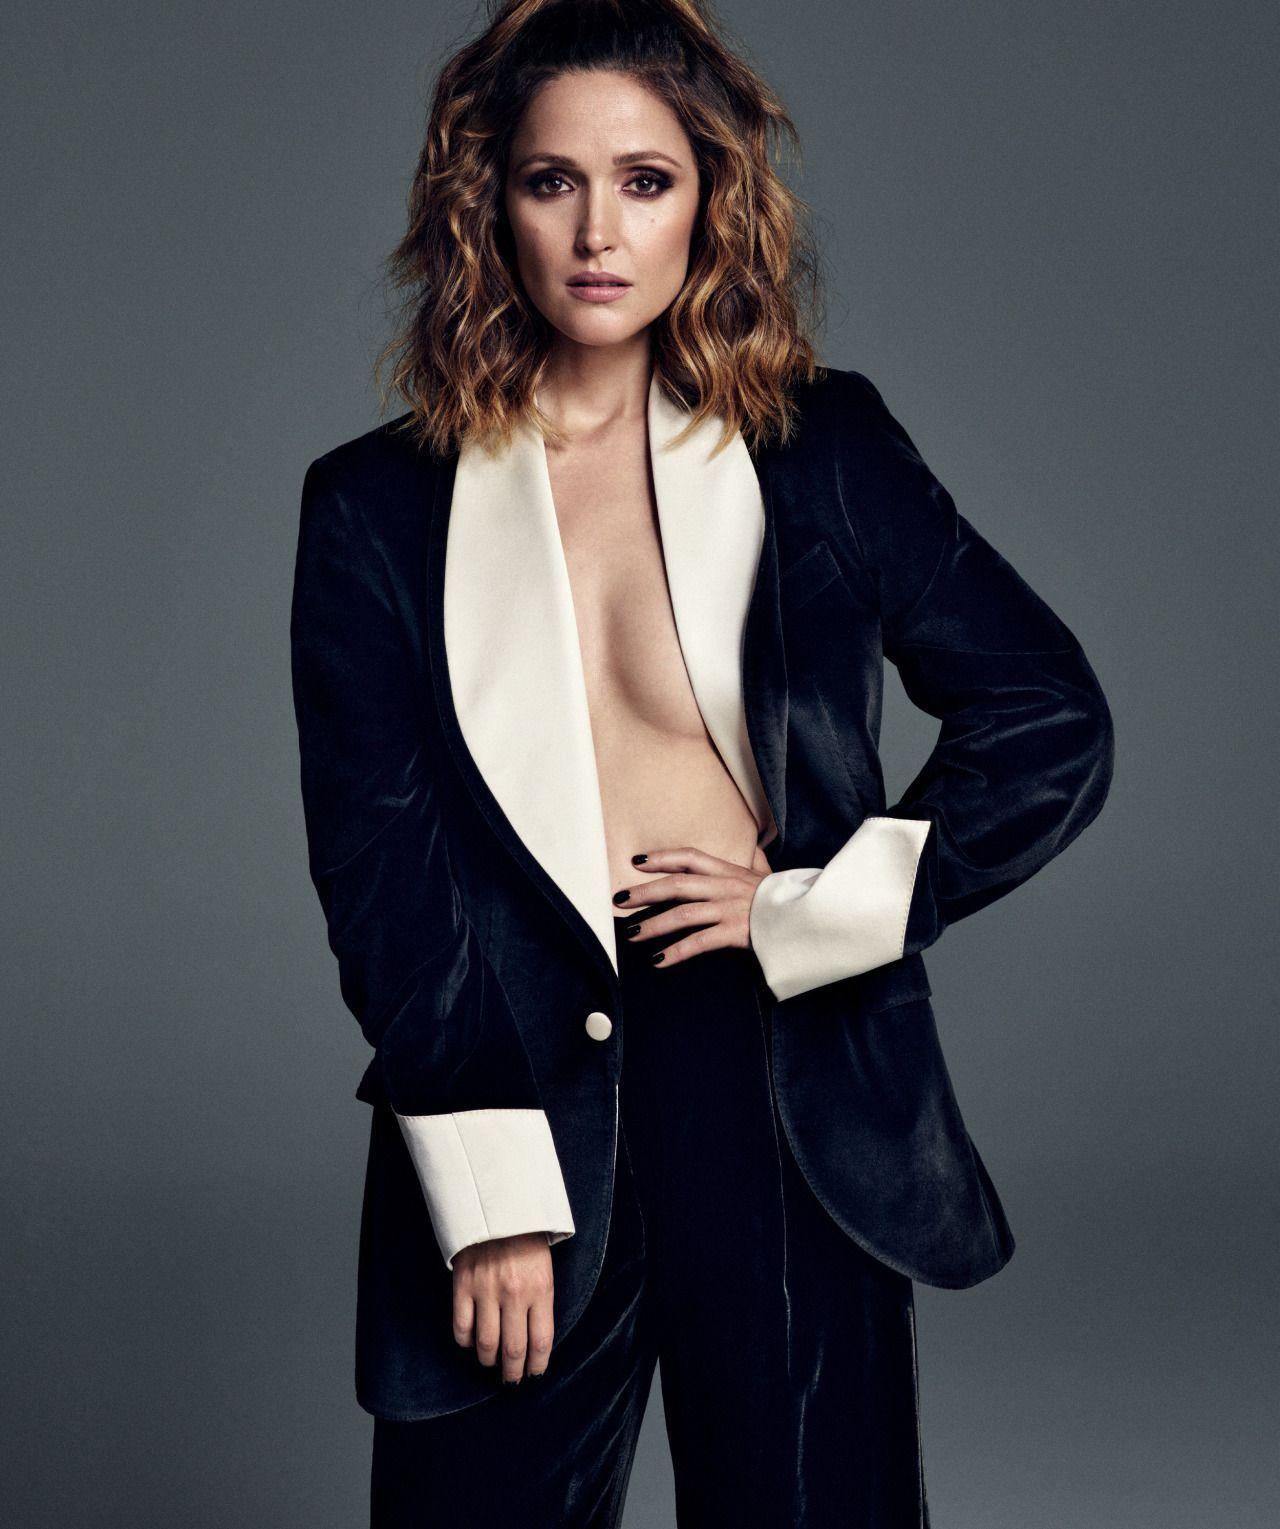 Rose Byrne sexy side boobs pics